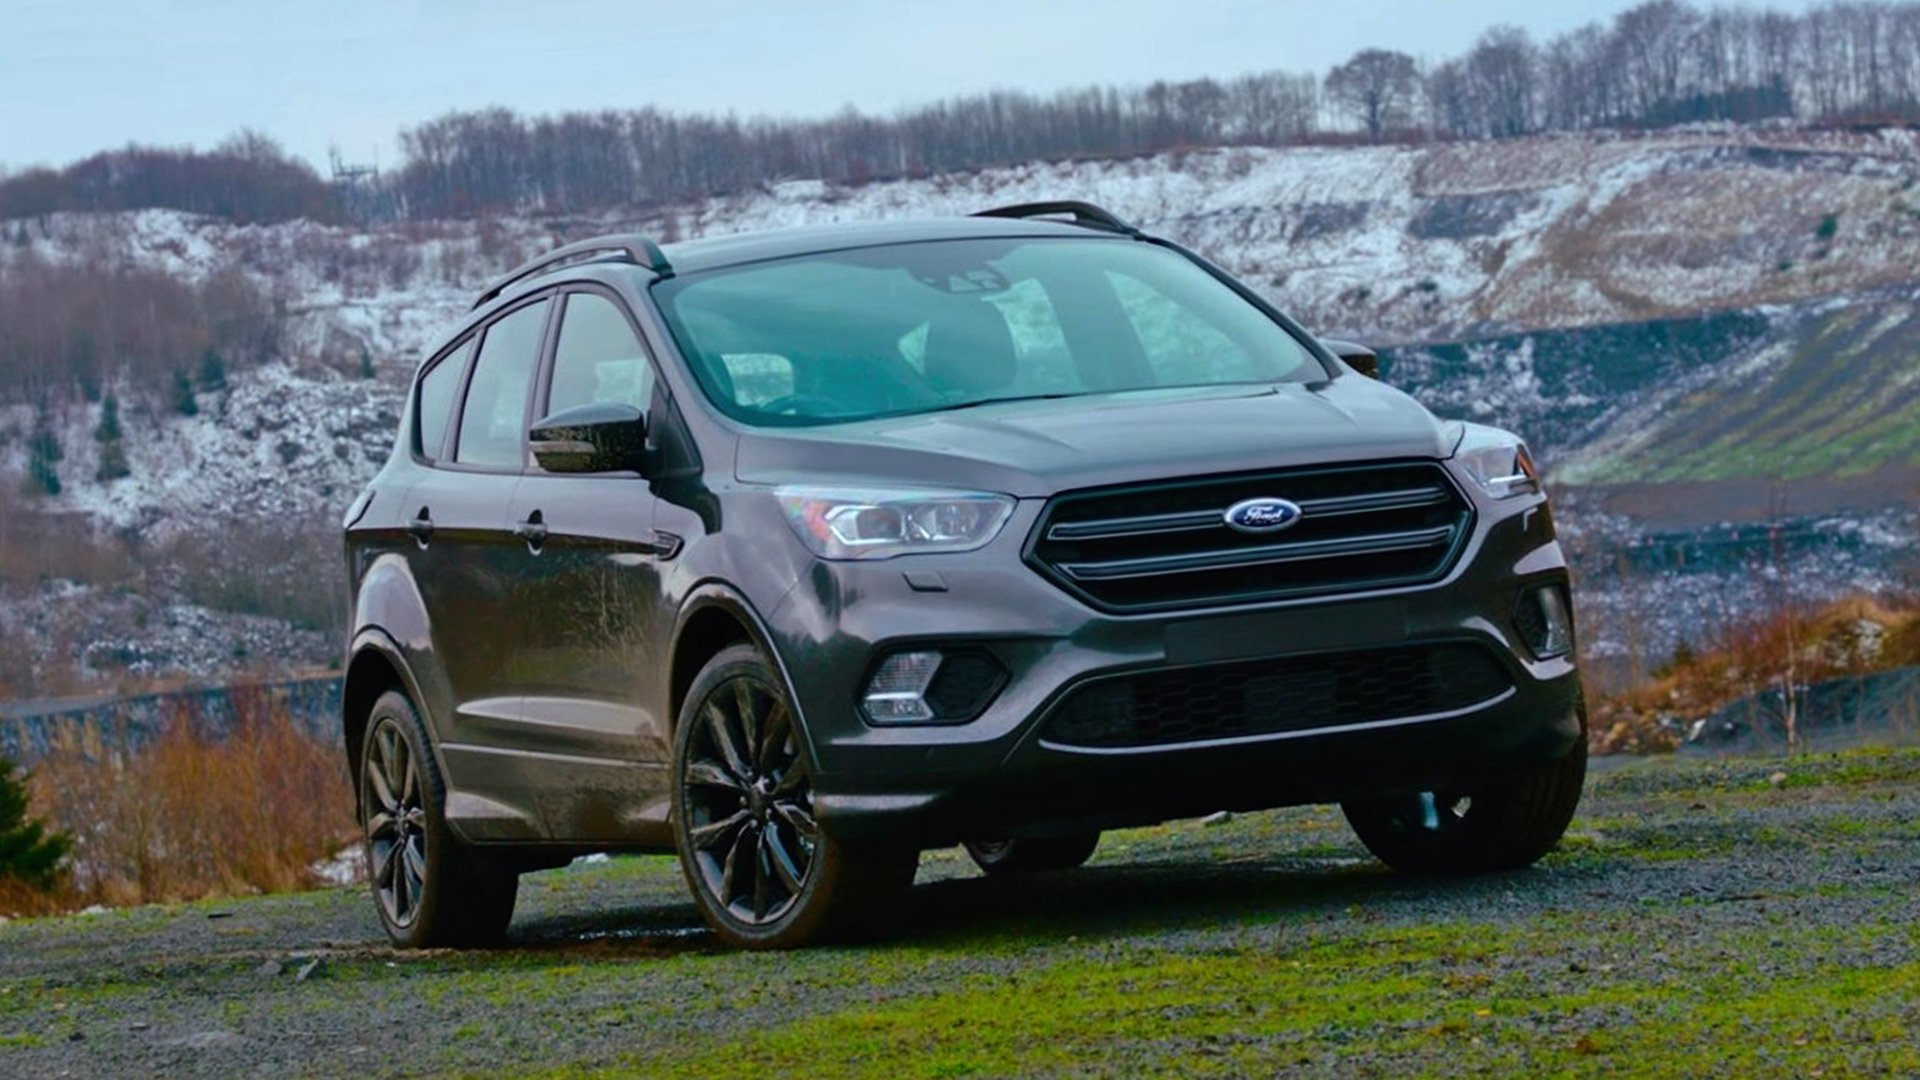 2018 Ford Kuga USA Price List HD